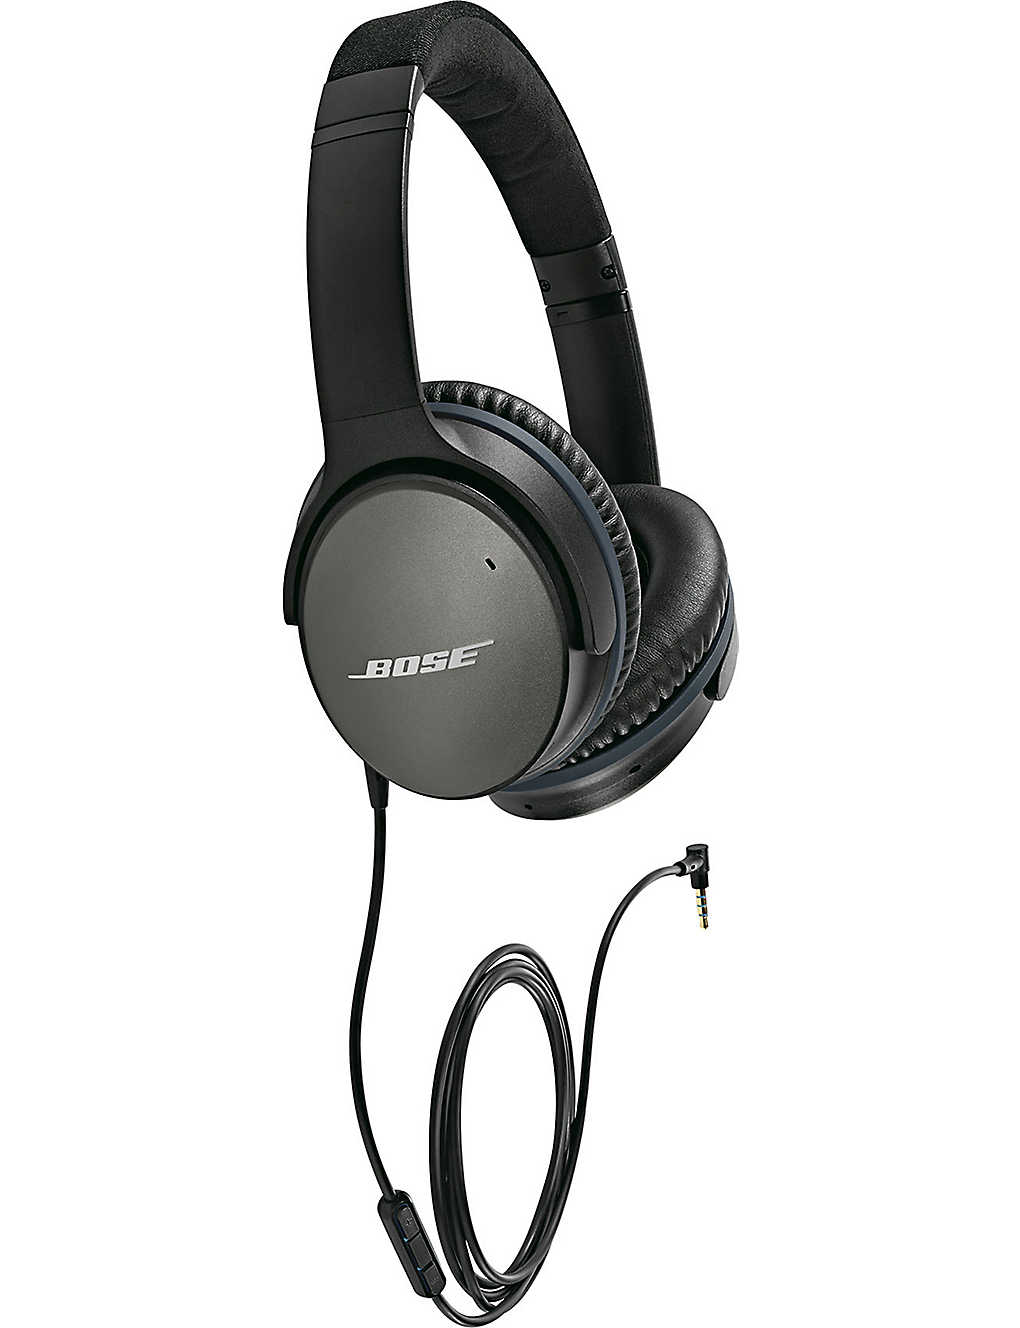 03a945daad3 BOSE - Quietcomfort® 25 android headphones | Selfridges.com